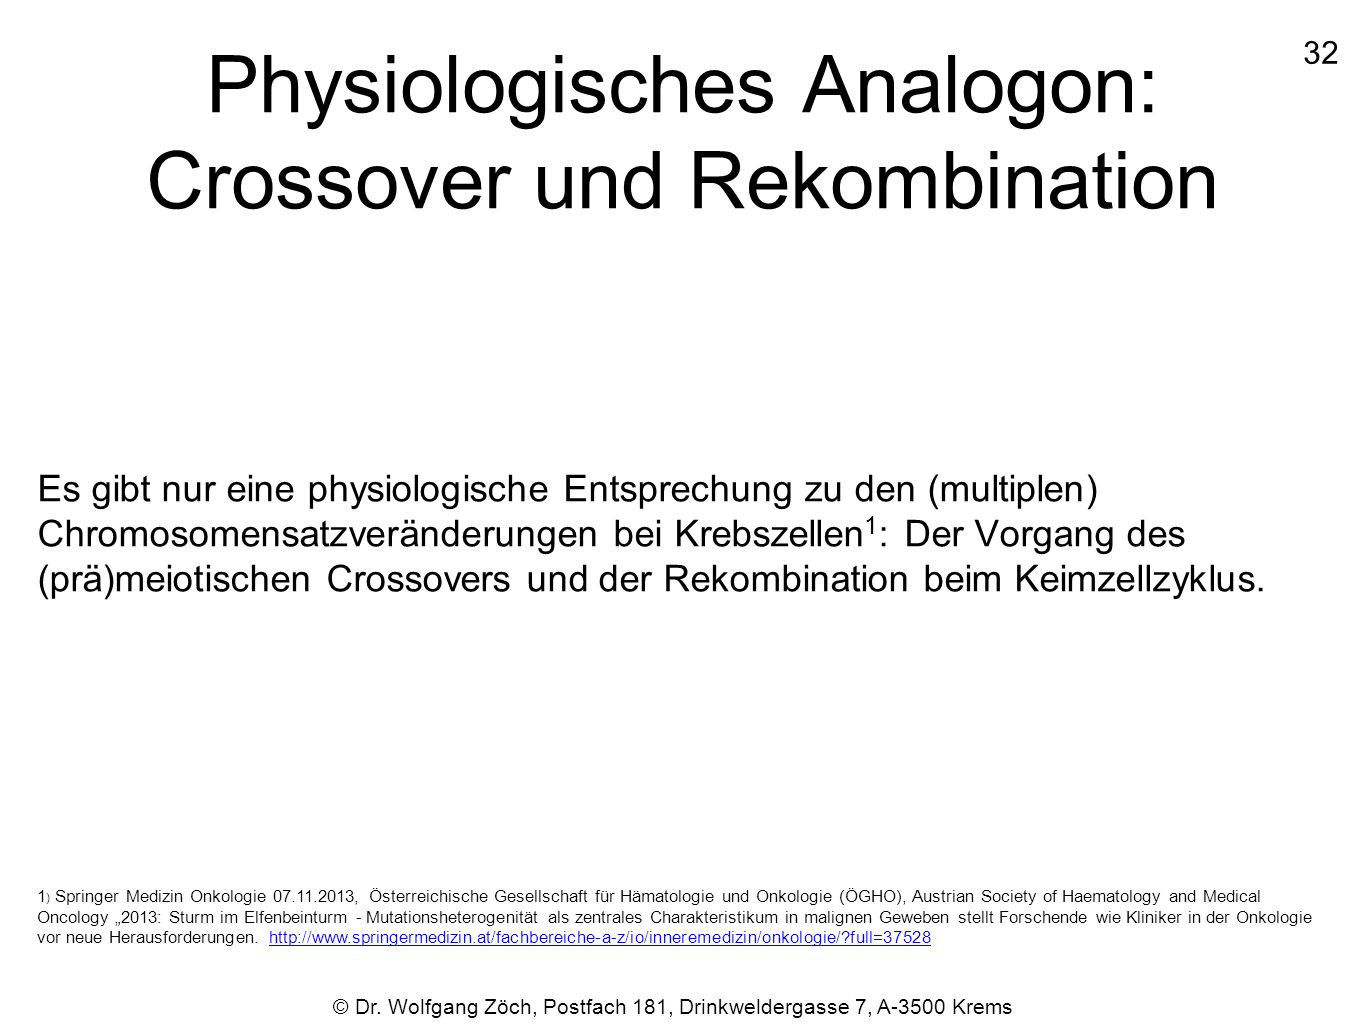 Physiologisches Analogon: Crossover und Rekombination